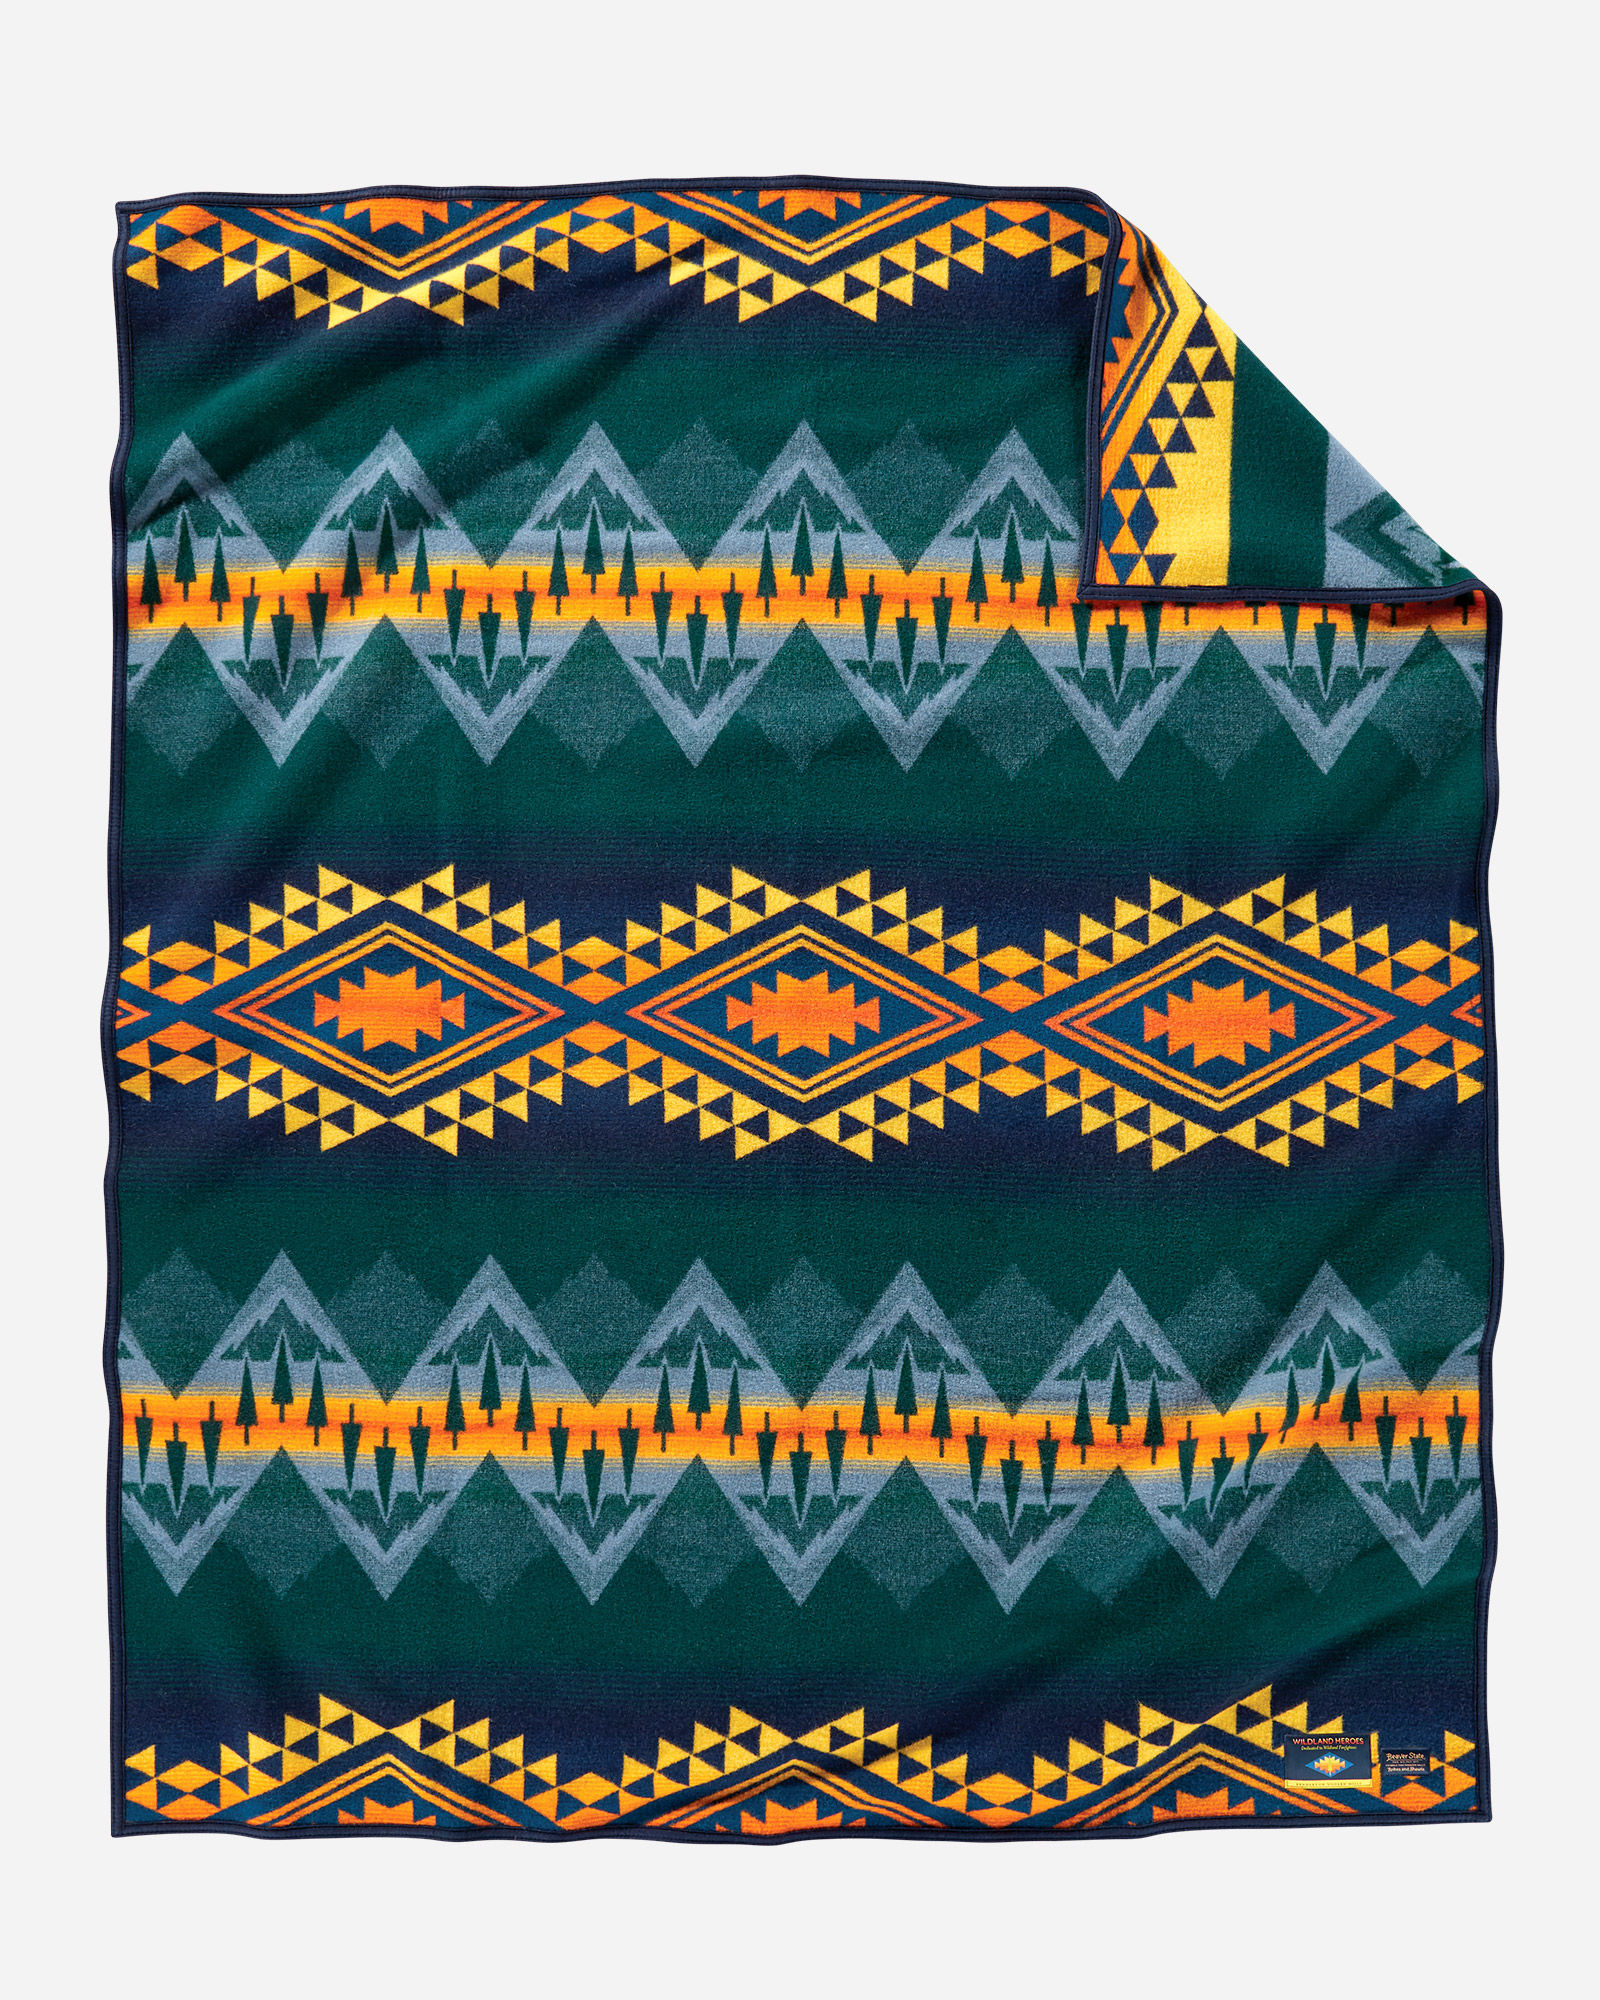 The Pendleton Wildland Heroes blanket shows bands of geometric designs that also include evergreen trees, with a dark forest green background, light blue trangles to symbolize water, and yellow and orange accents that represent the threat of wildfires.